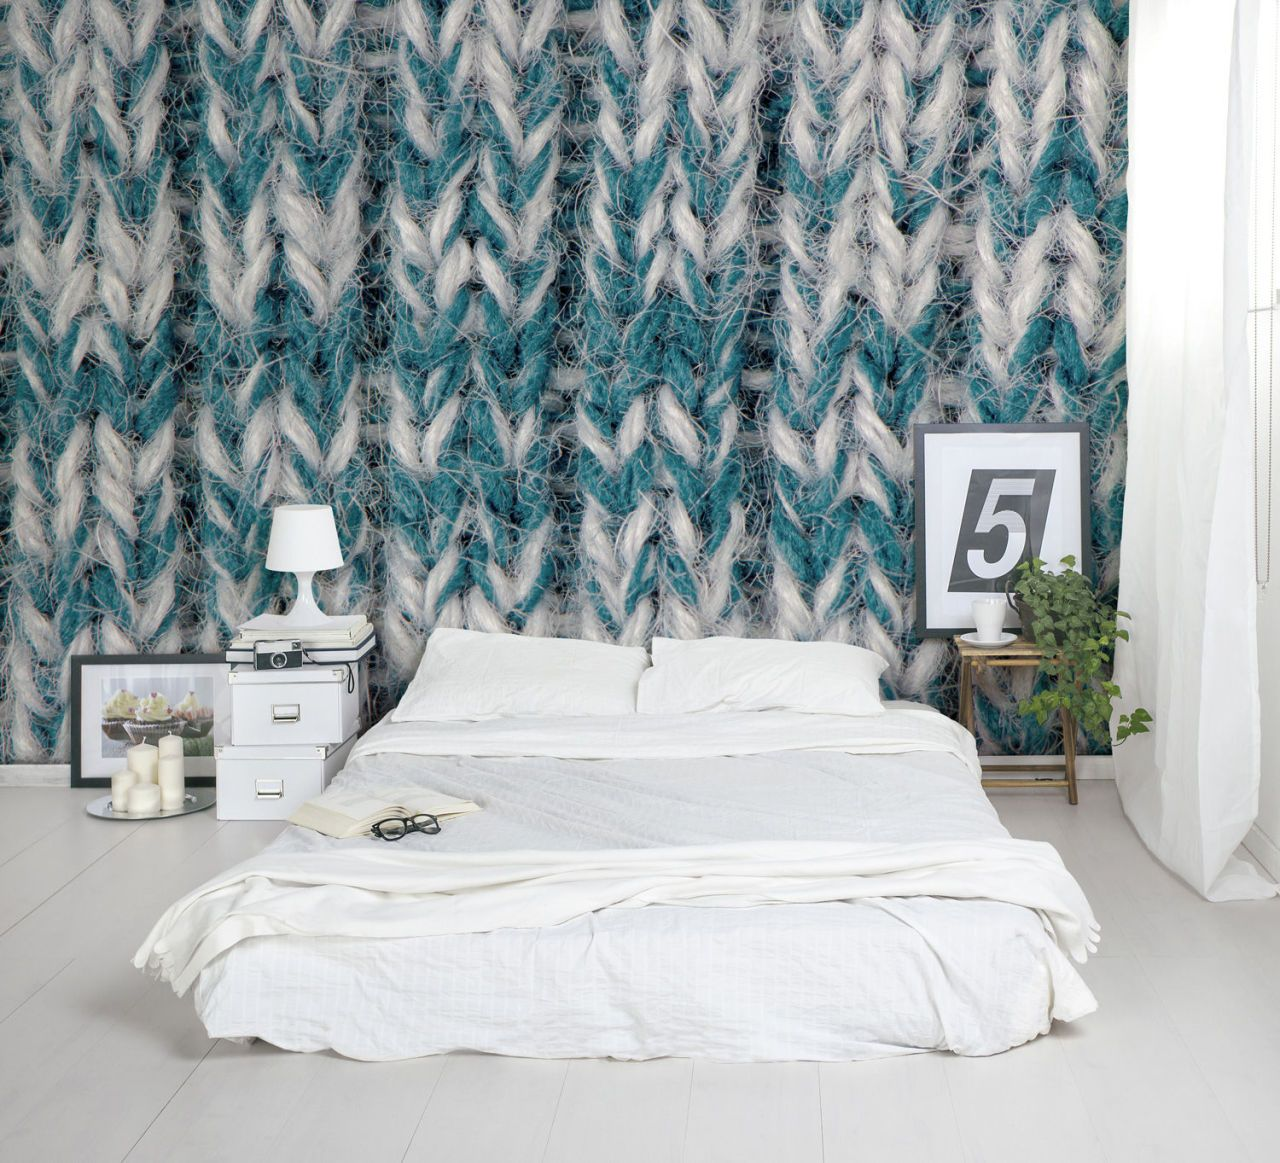 Blue And White Knit Wallpaper Mural In A Bedroom